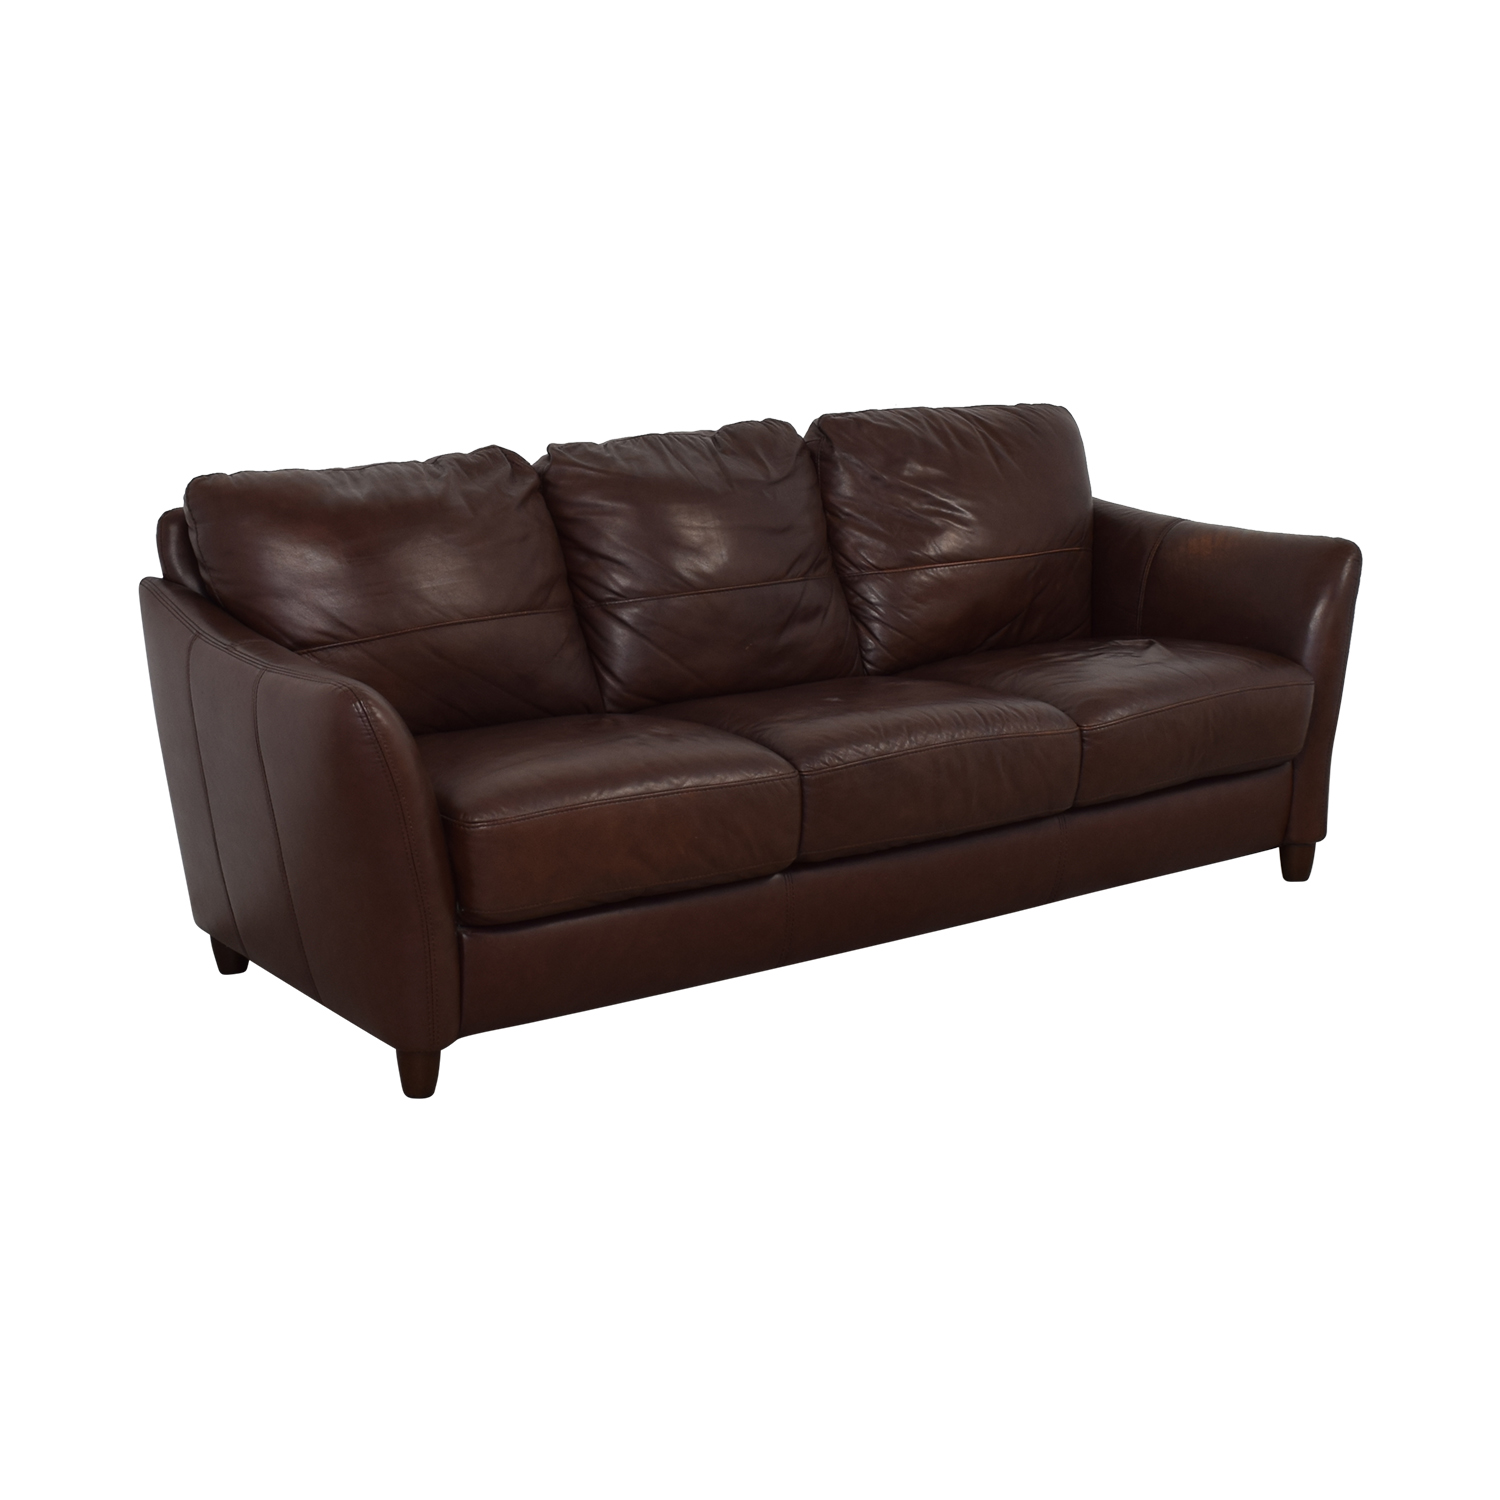 Raymour & Flanigan Raymour & Flanigan Leather Sofa coupon